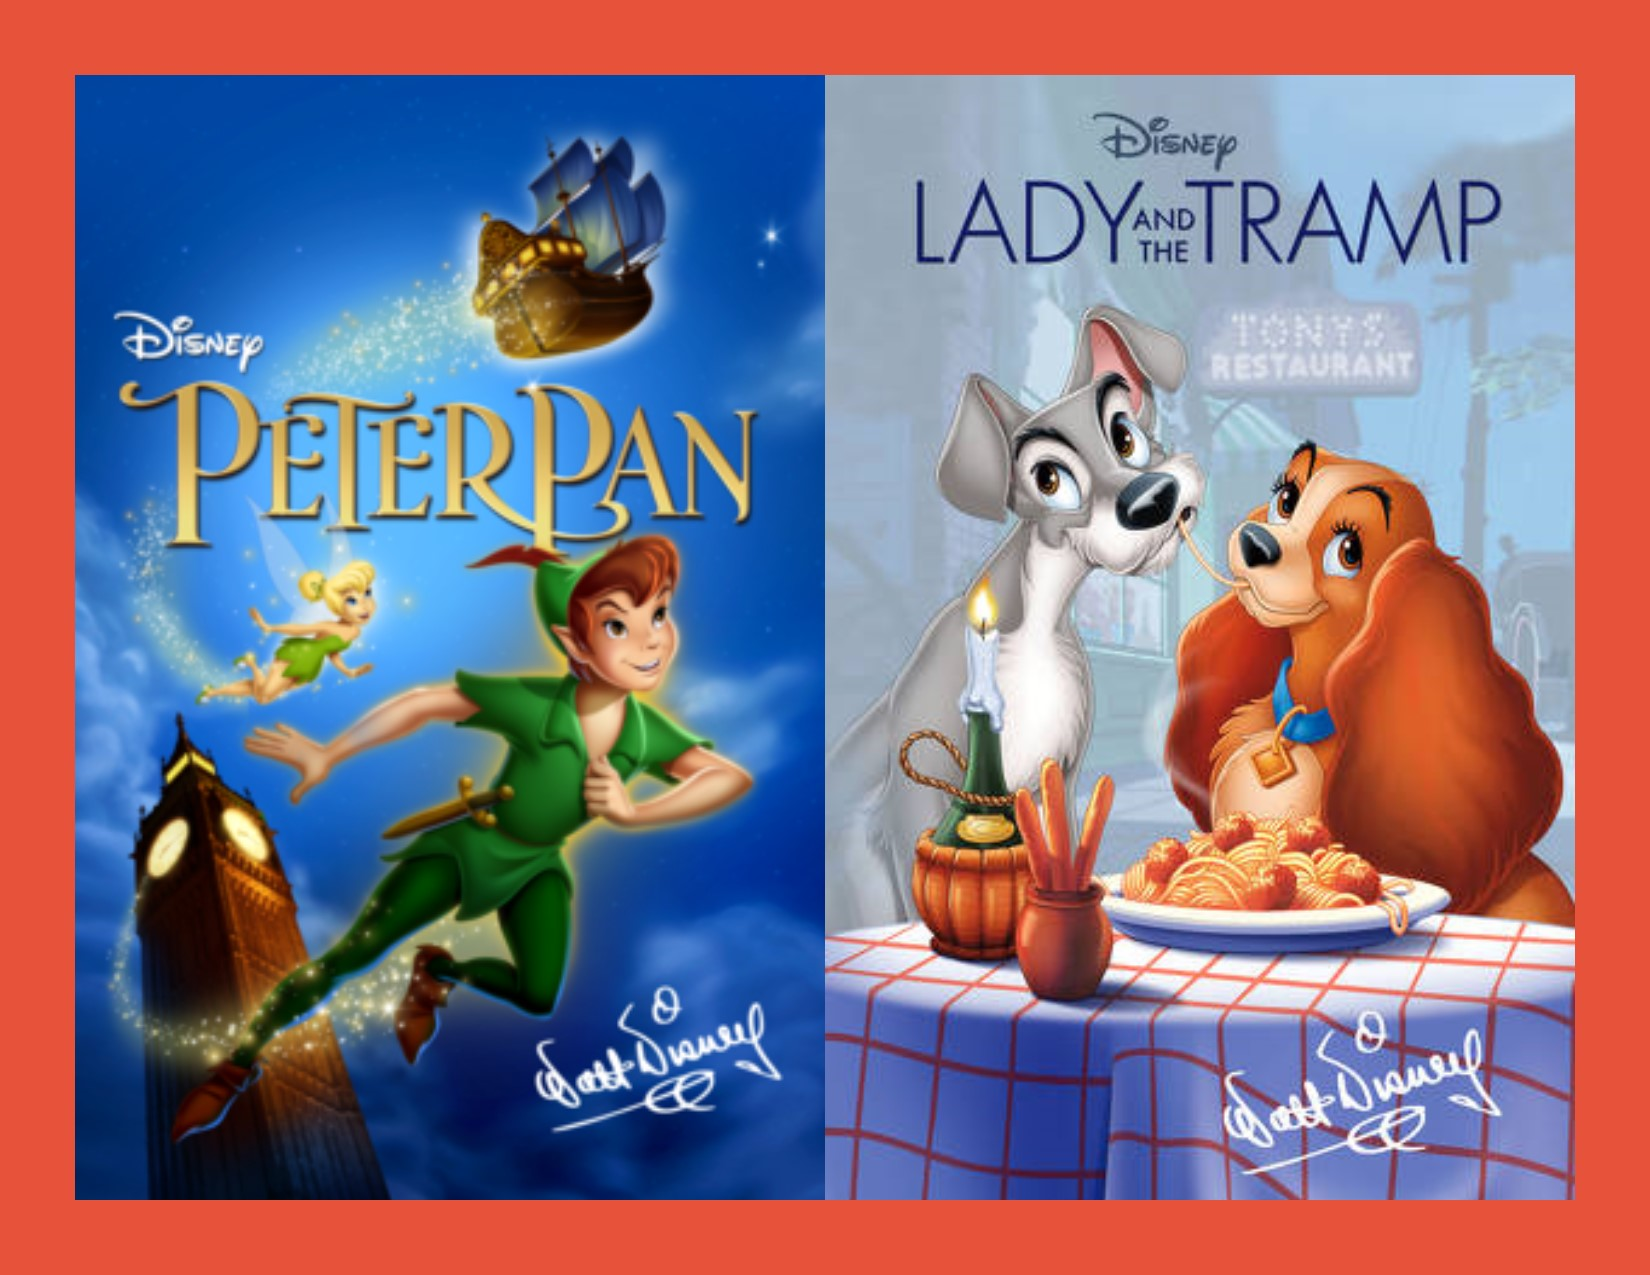 Movies: Peter Pan and Lady and the Tramp